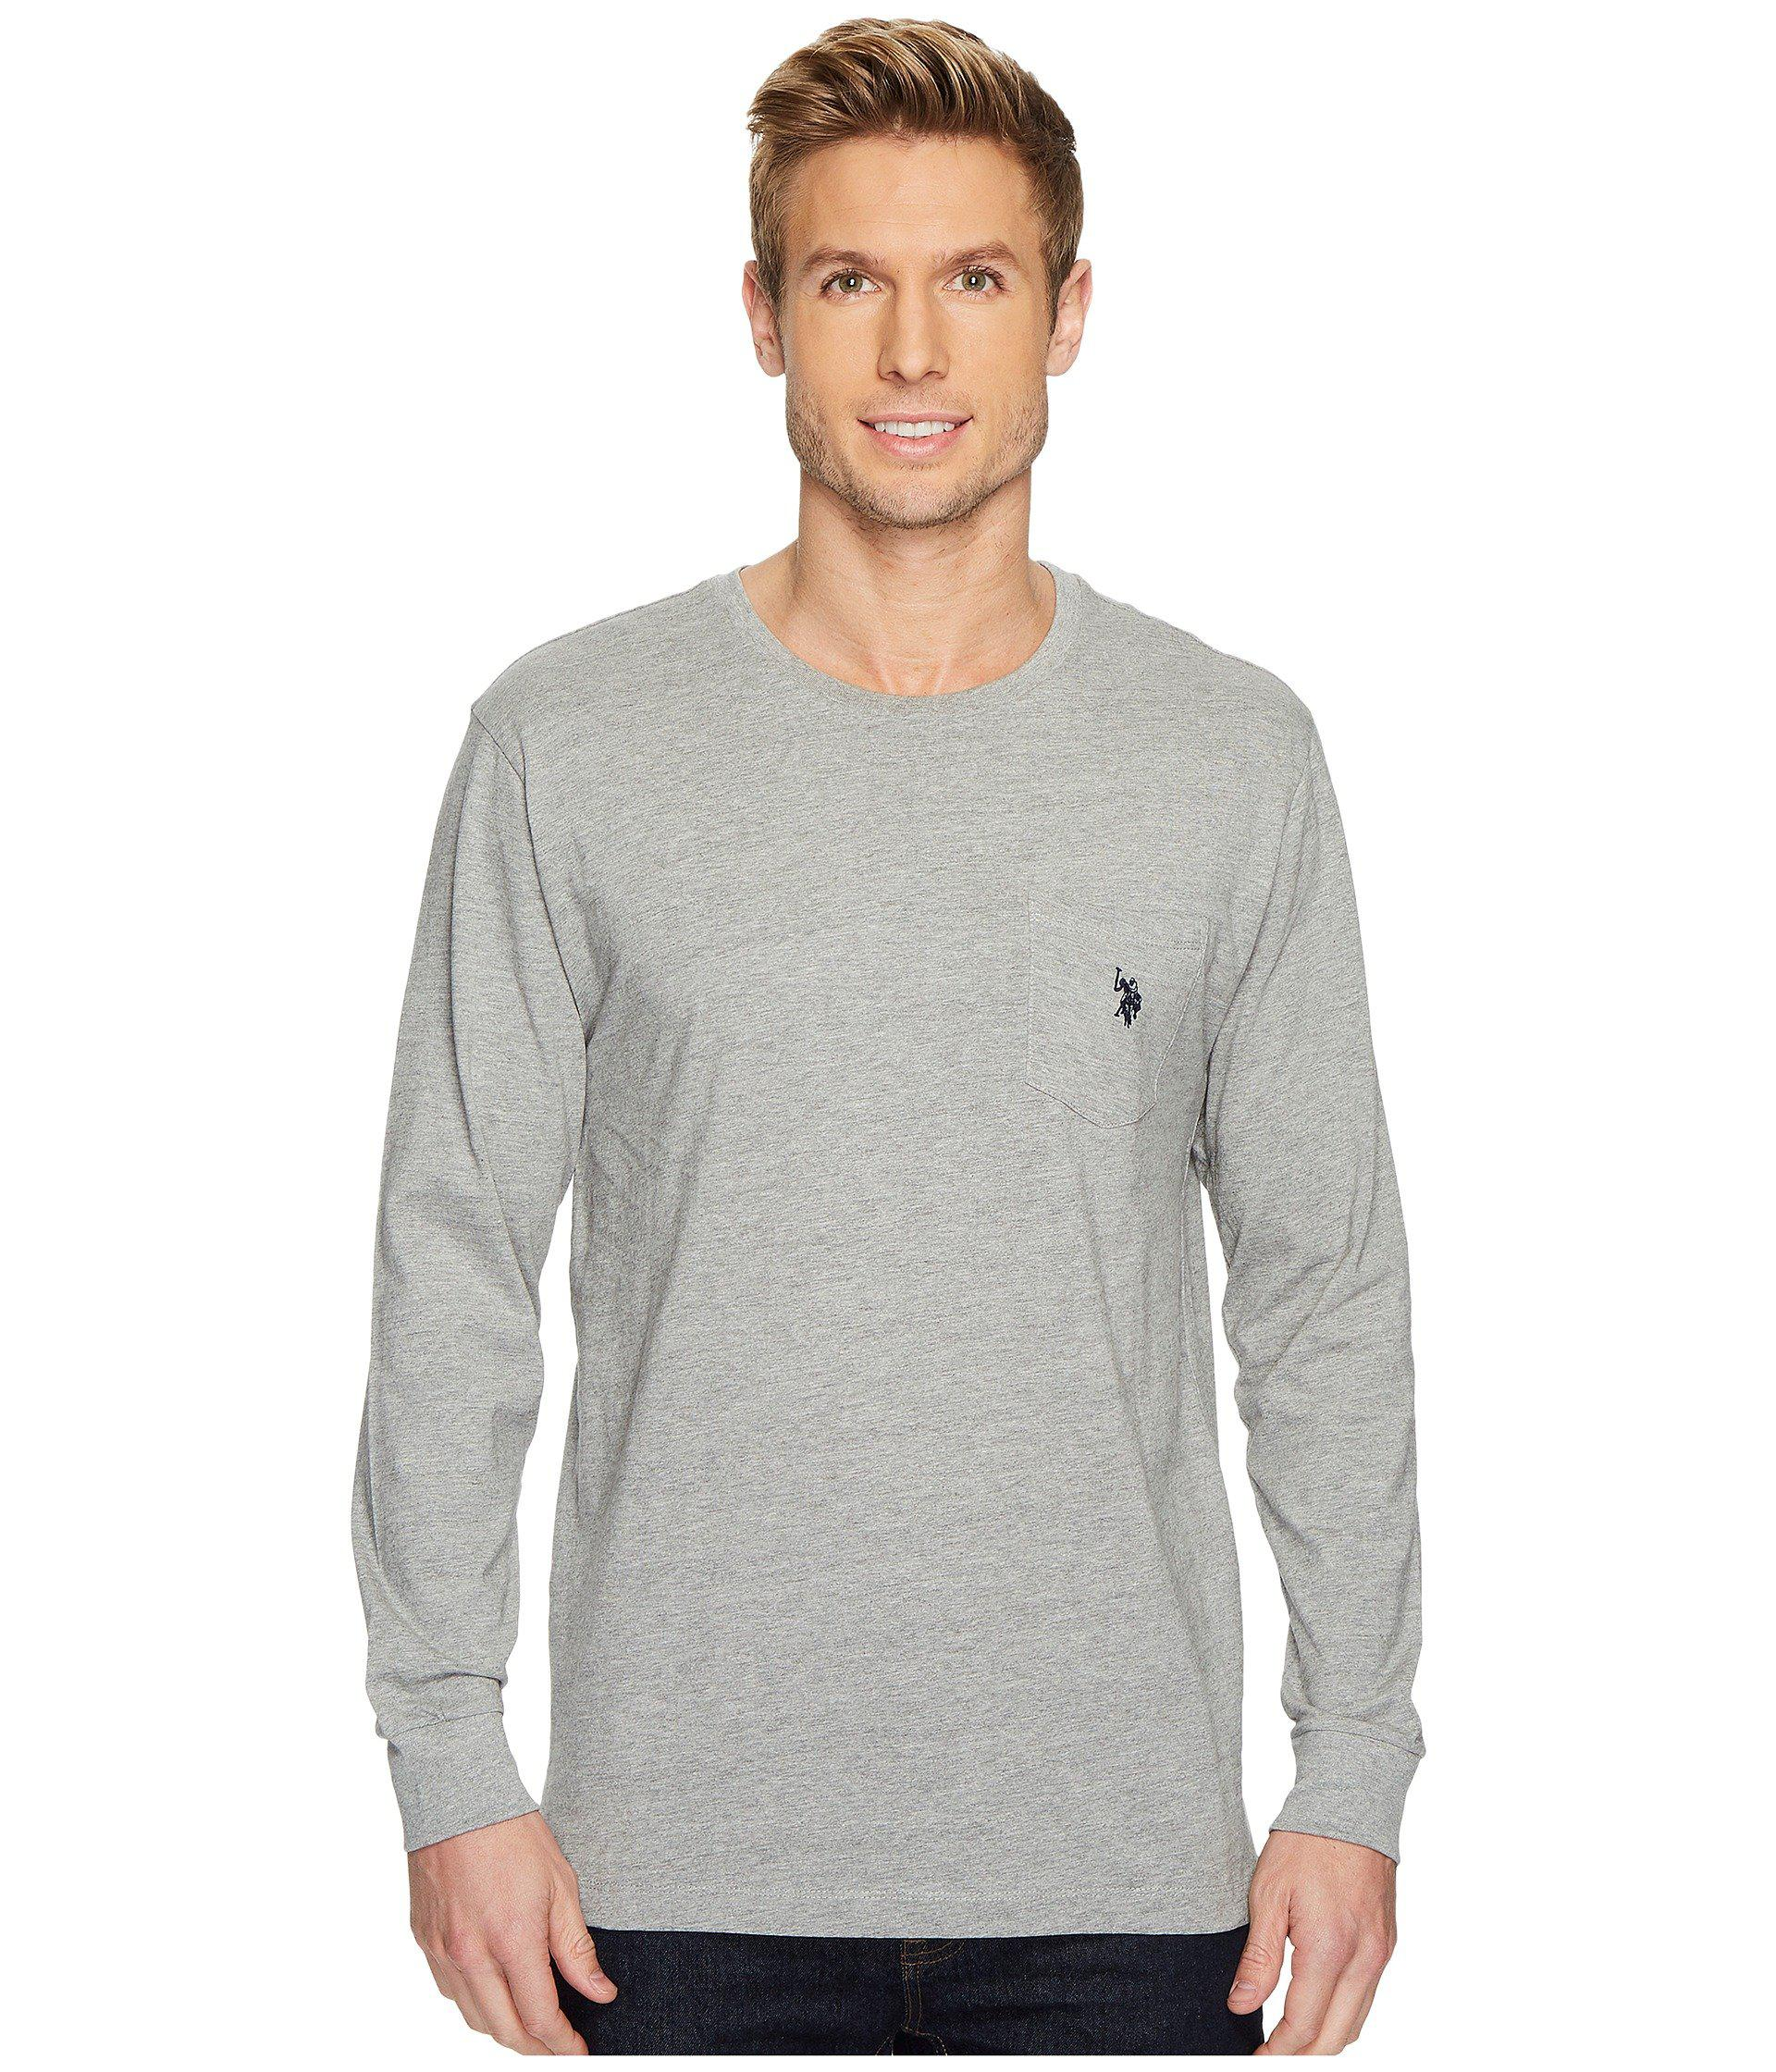 U.S. POLO ASSN. Men's Gray Long Sleeve Thermal Henley Shirt